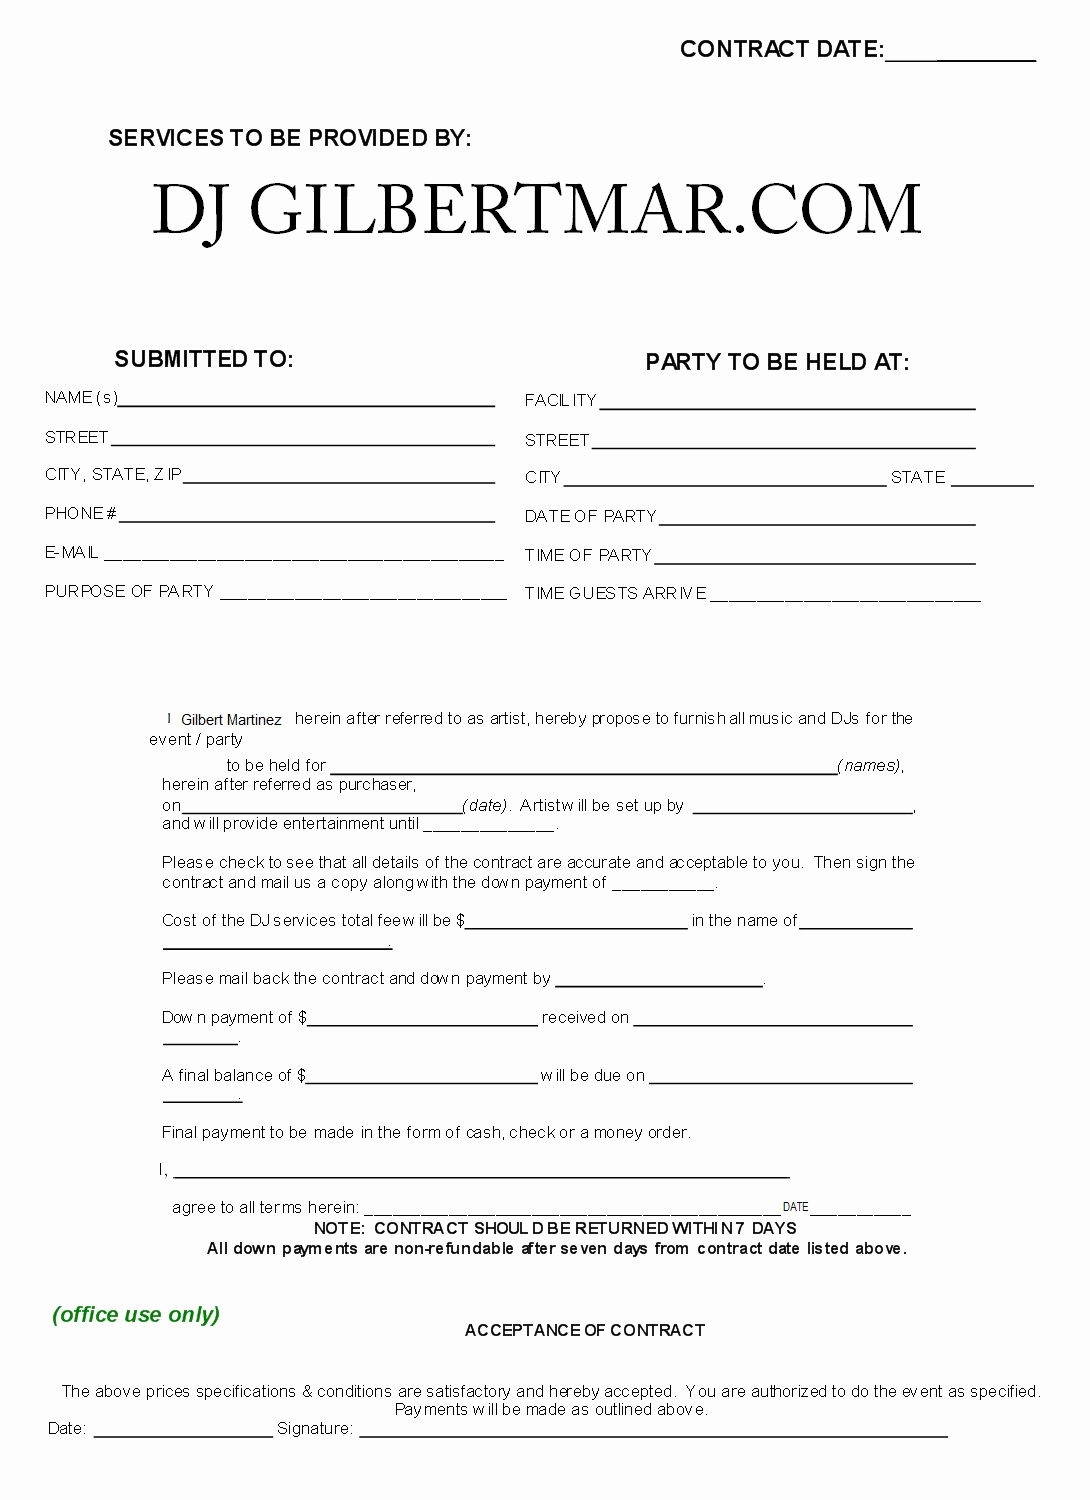 Dj Contract Template Microsoft Word New Dj Contract Template